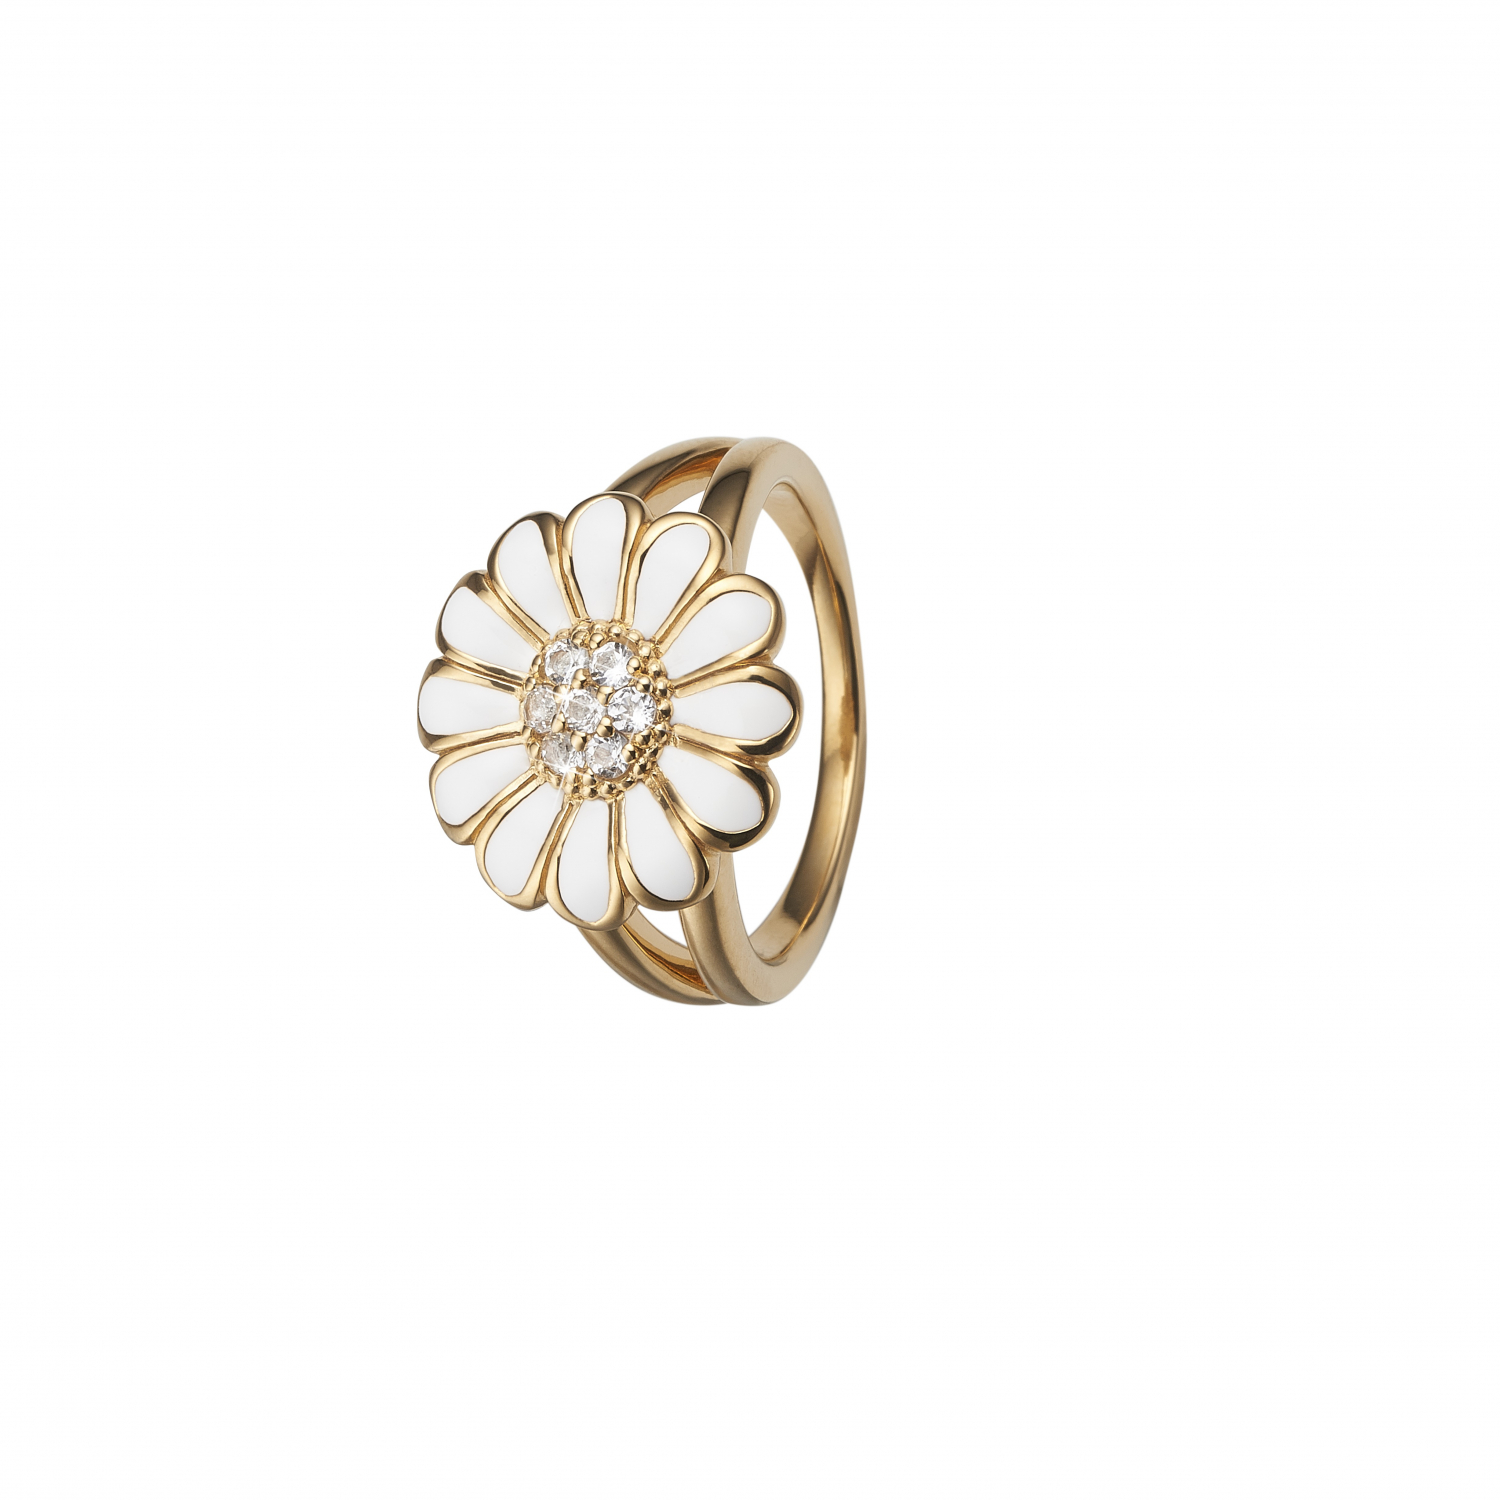 CHRISTINA White Marguerite ring 16 mm - 4.6B Størrelse 47